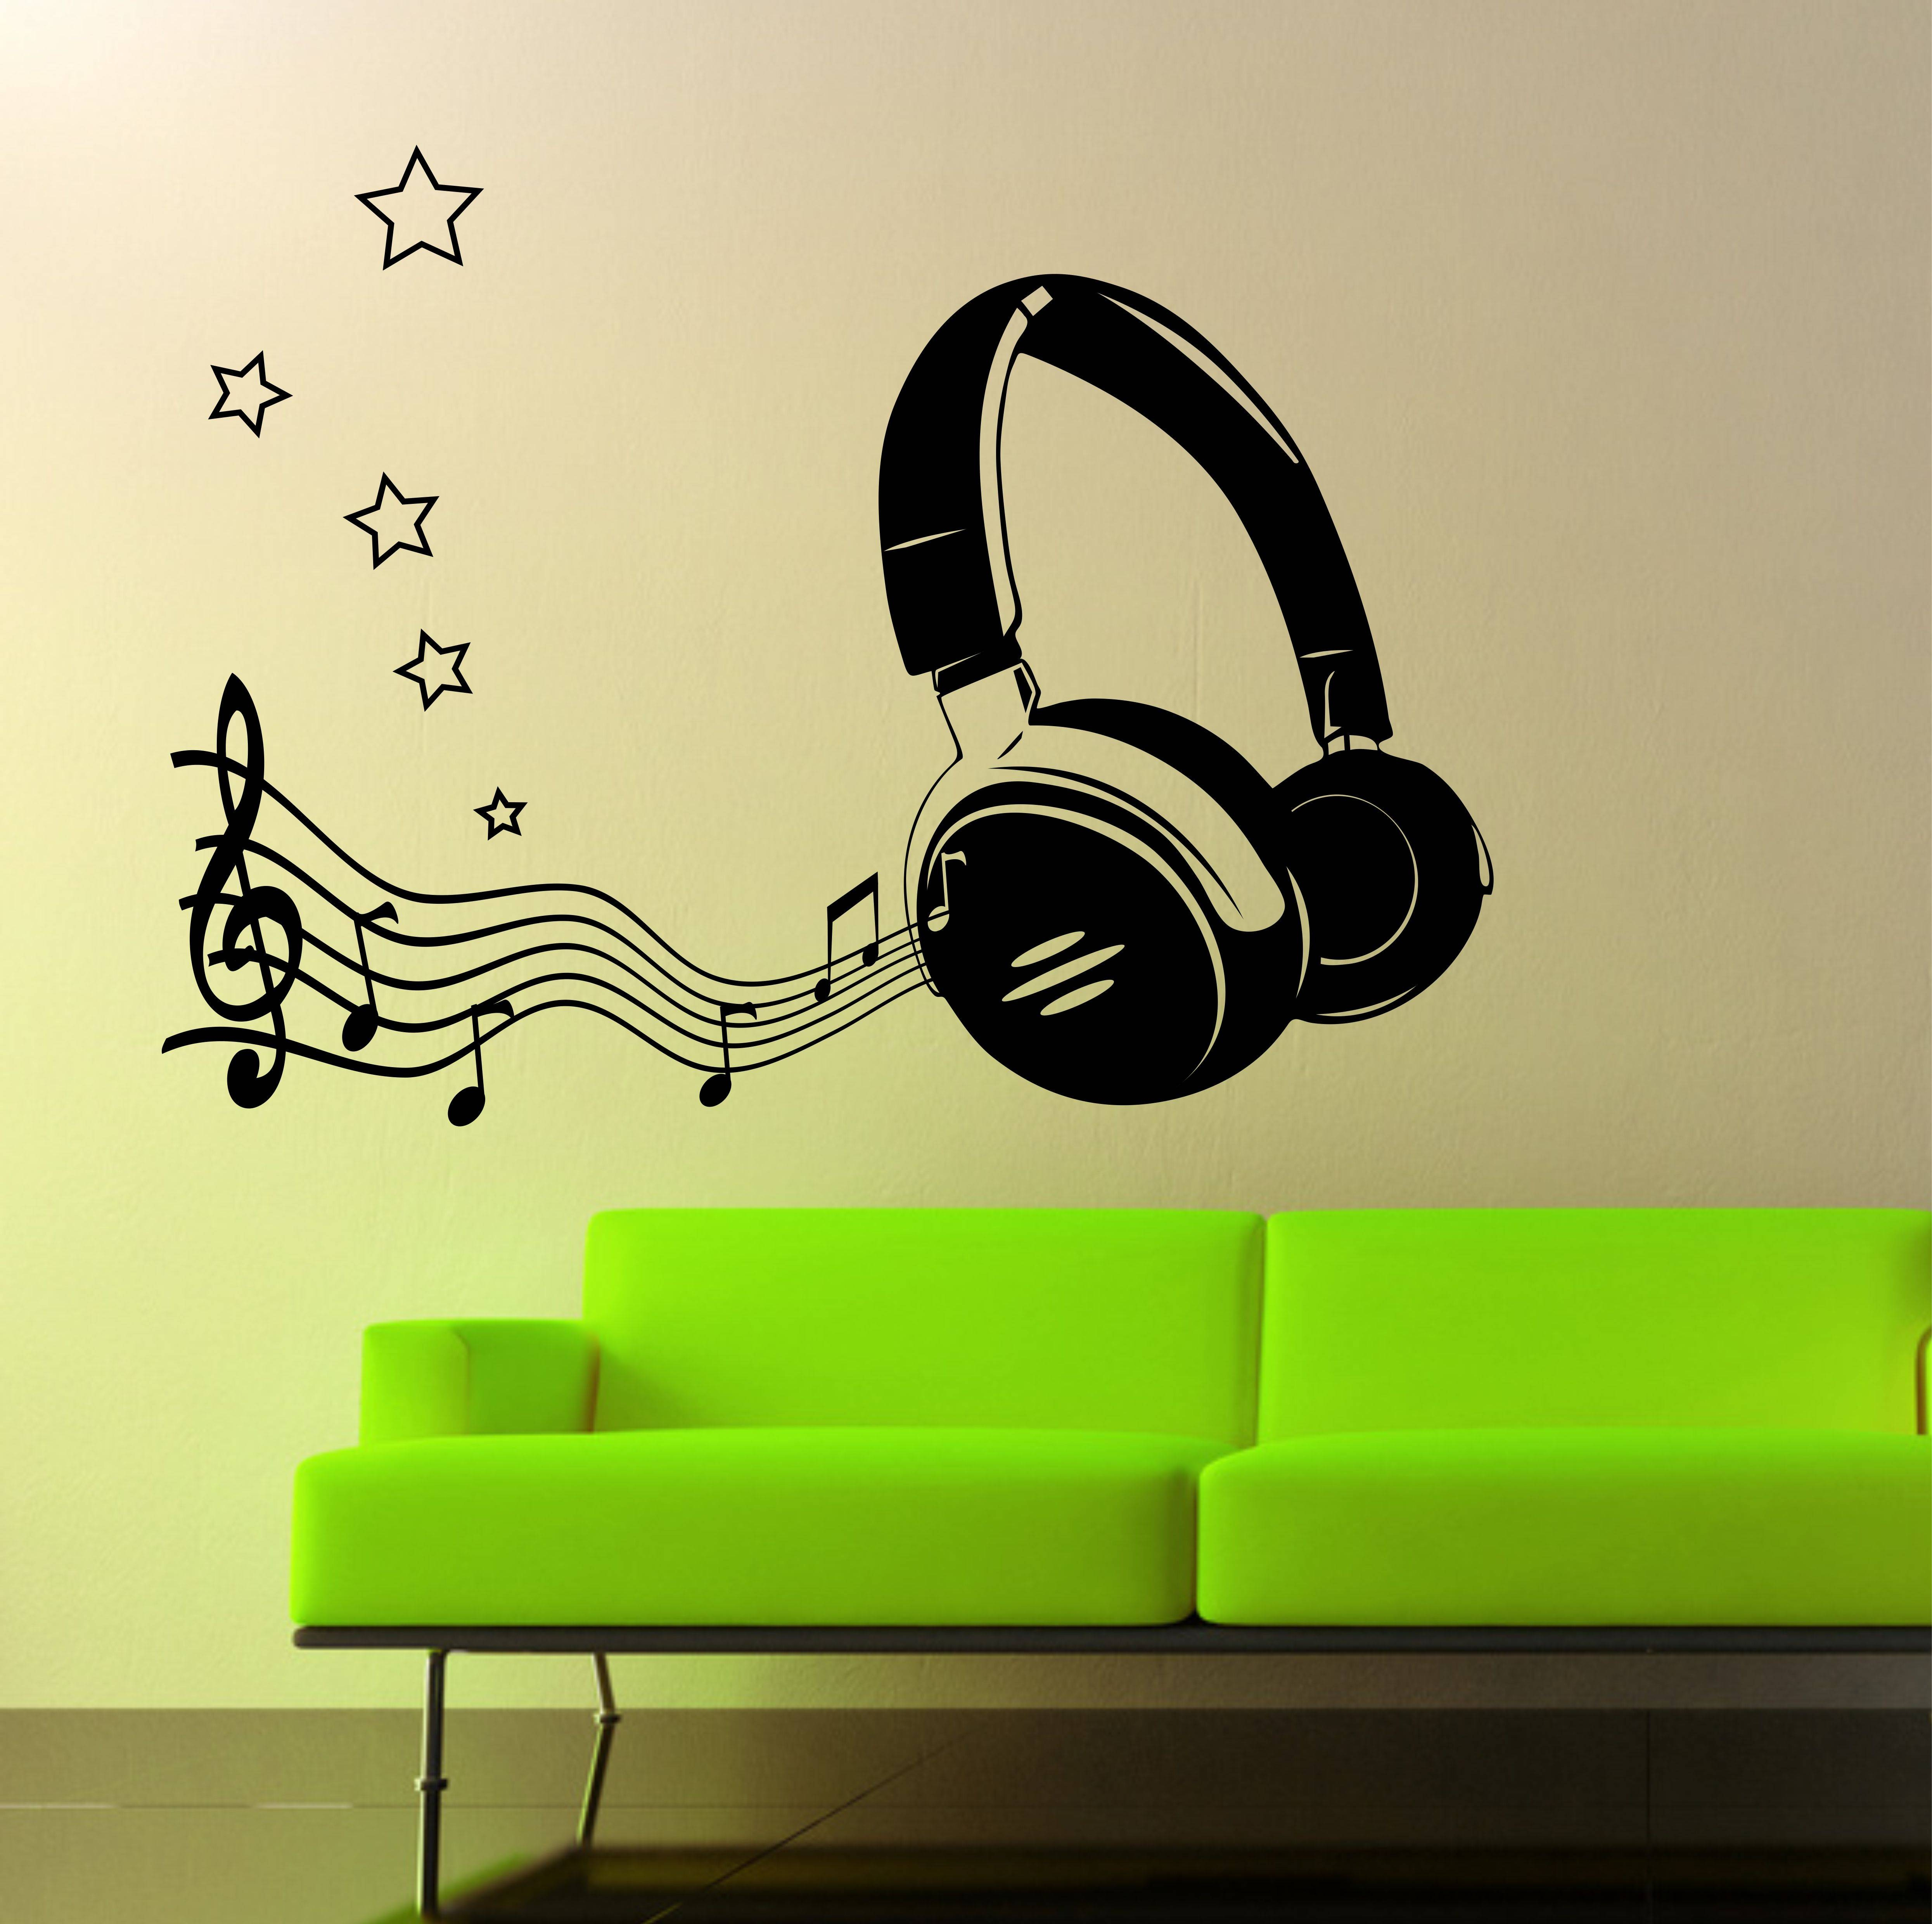 The Grafix Studio | 07 Headphone & Music Notes Wall Art Sticker Within Newest Music Note Wall Art (View 2 of 20)